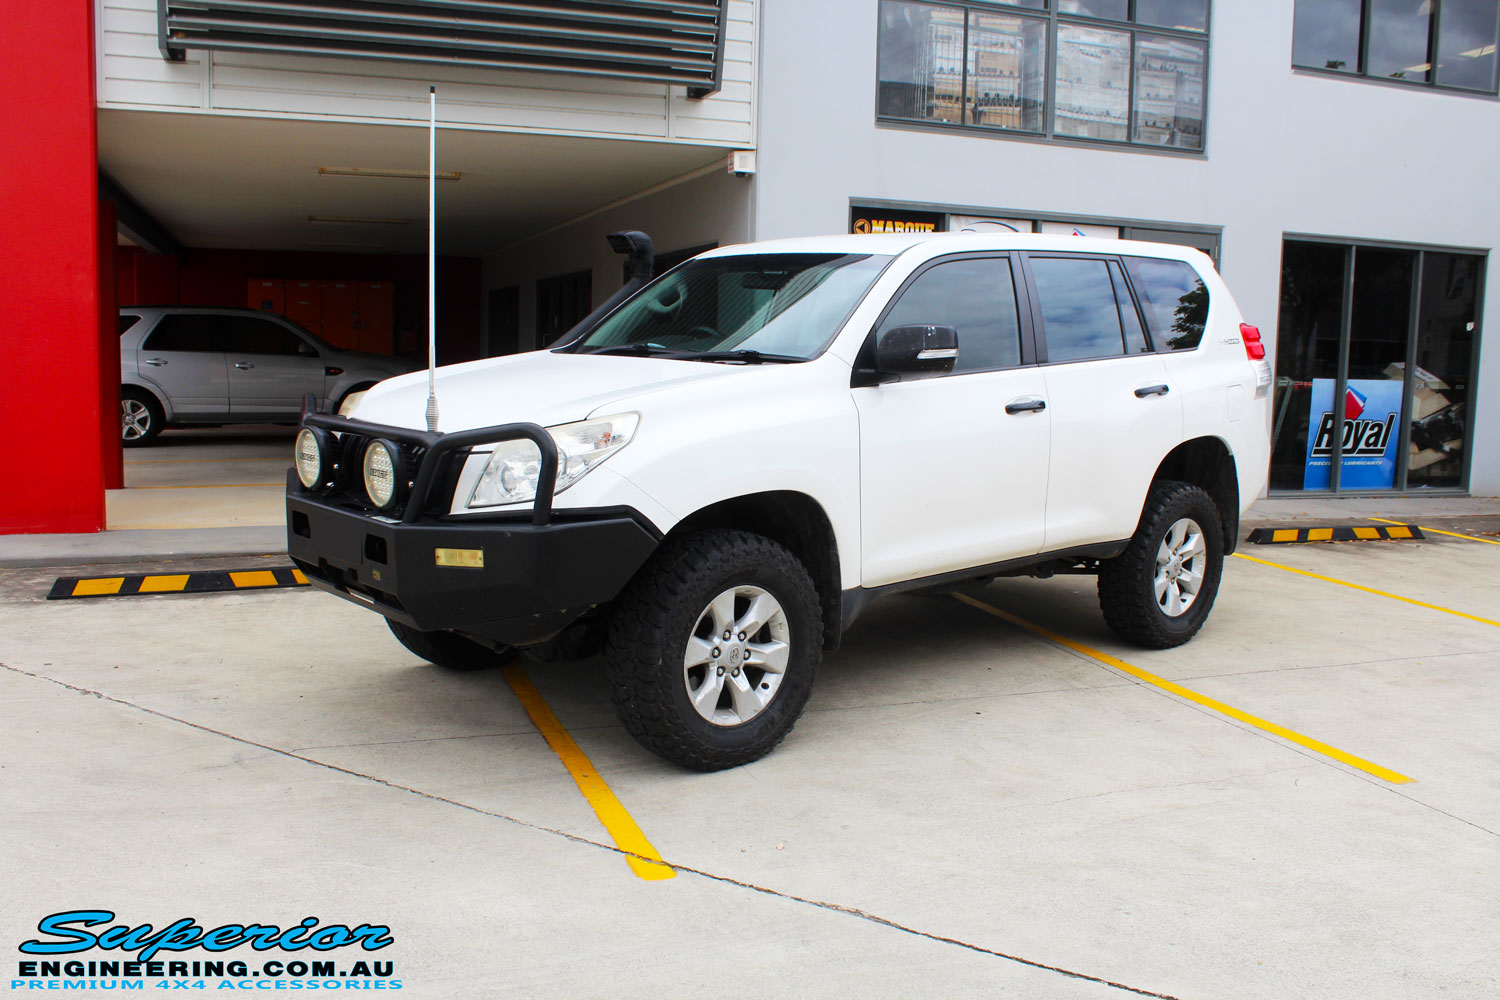 """Right front side view of a White Toyota 150 Landcruiser Prado Wagon after fitment of a Superior Remote Reservoir 2"""" Inch Lift Kit with King Coil Springs and a Ironman 4x4 Snorkel"""